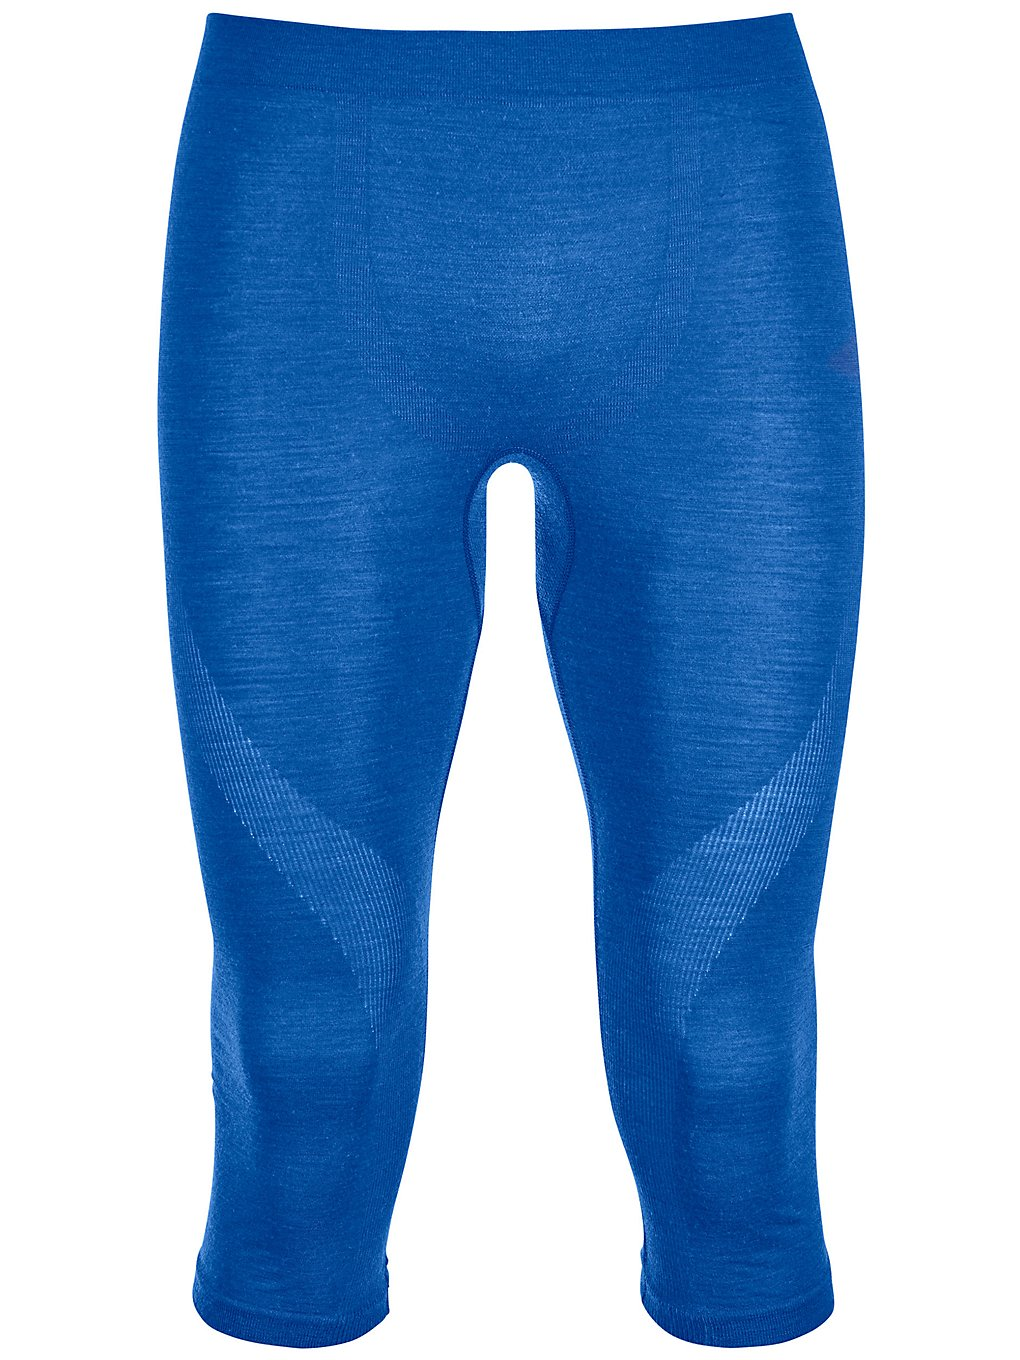 Ortovox 120 Comp Light Base Layer Bottom blauw